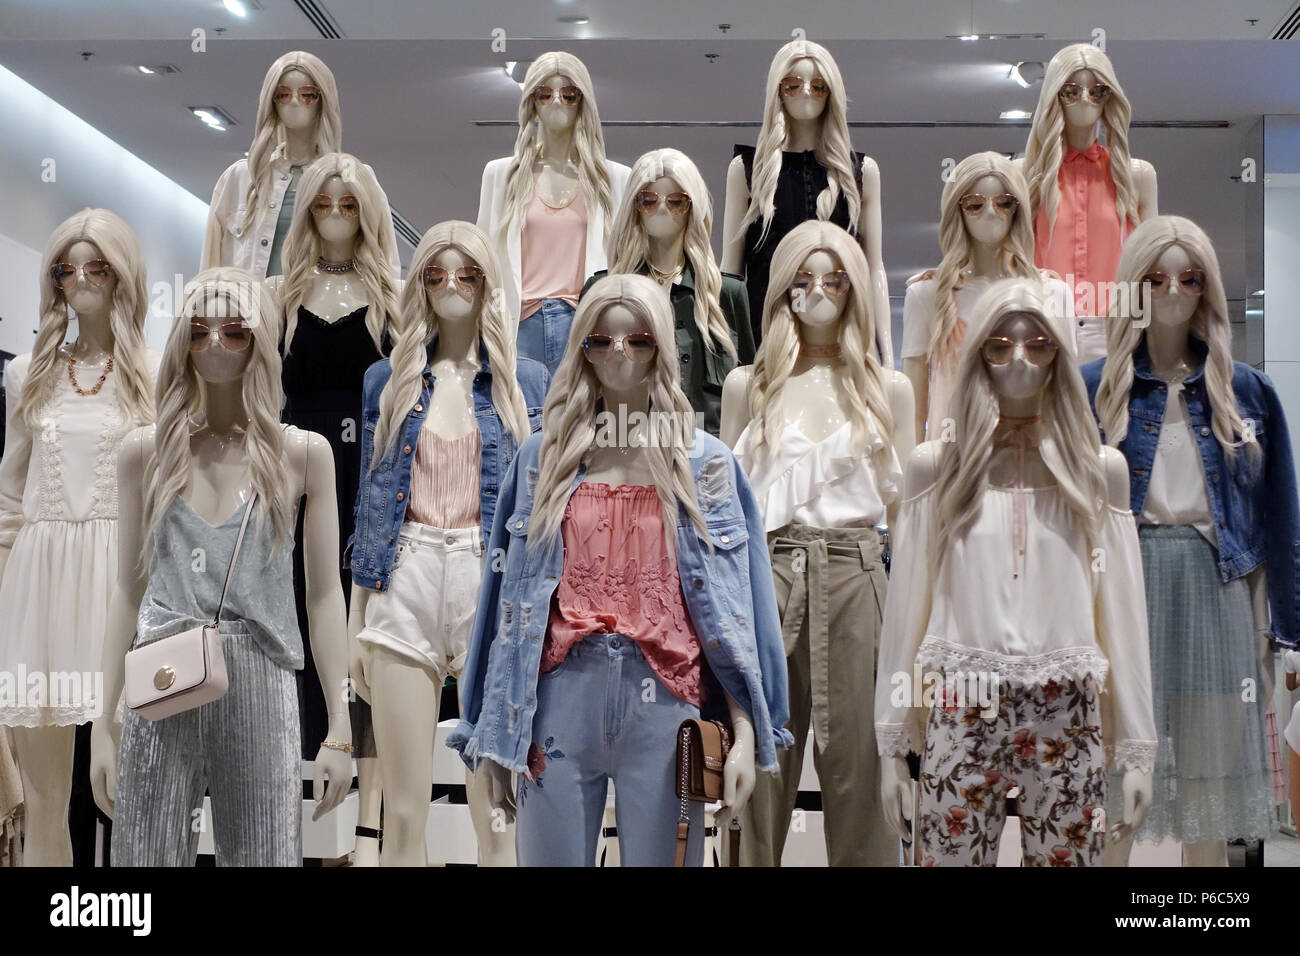 24.03.2017, Dubai, United Arab Emirates, female mannequins without mouth - Stock Image